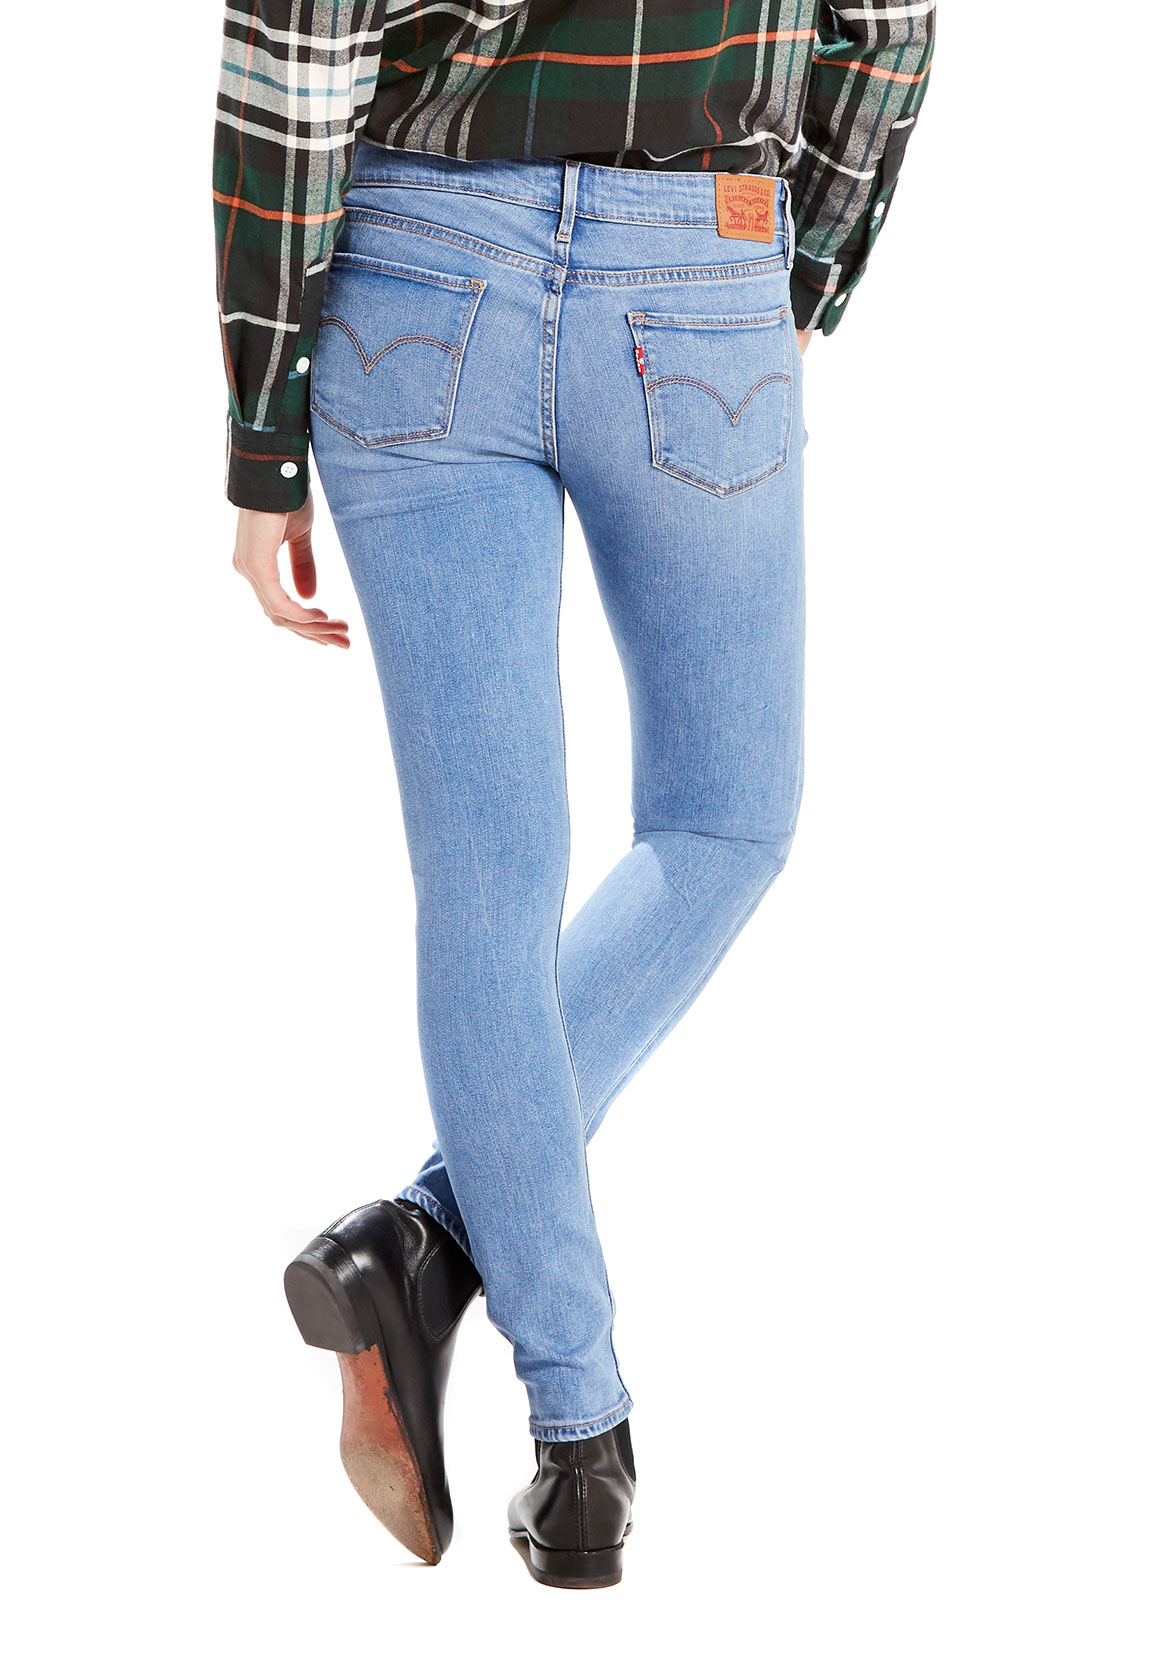 online store 51f70 5c529 Details about Levis Women's Jeans 711 Skinny 18881-0252 Thirteen